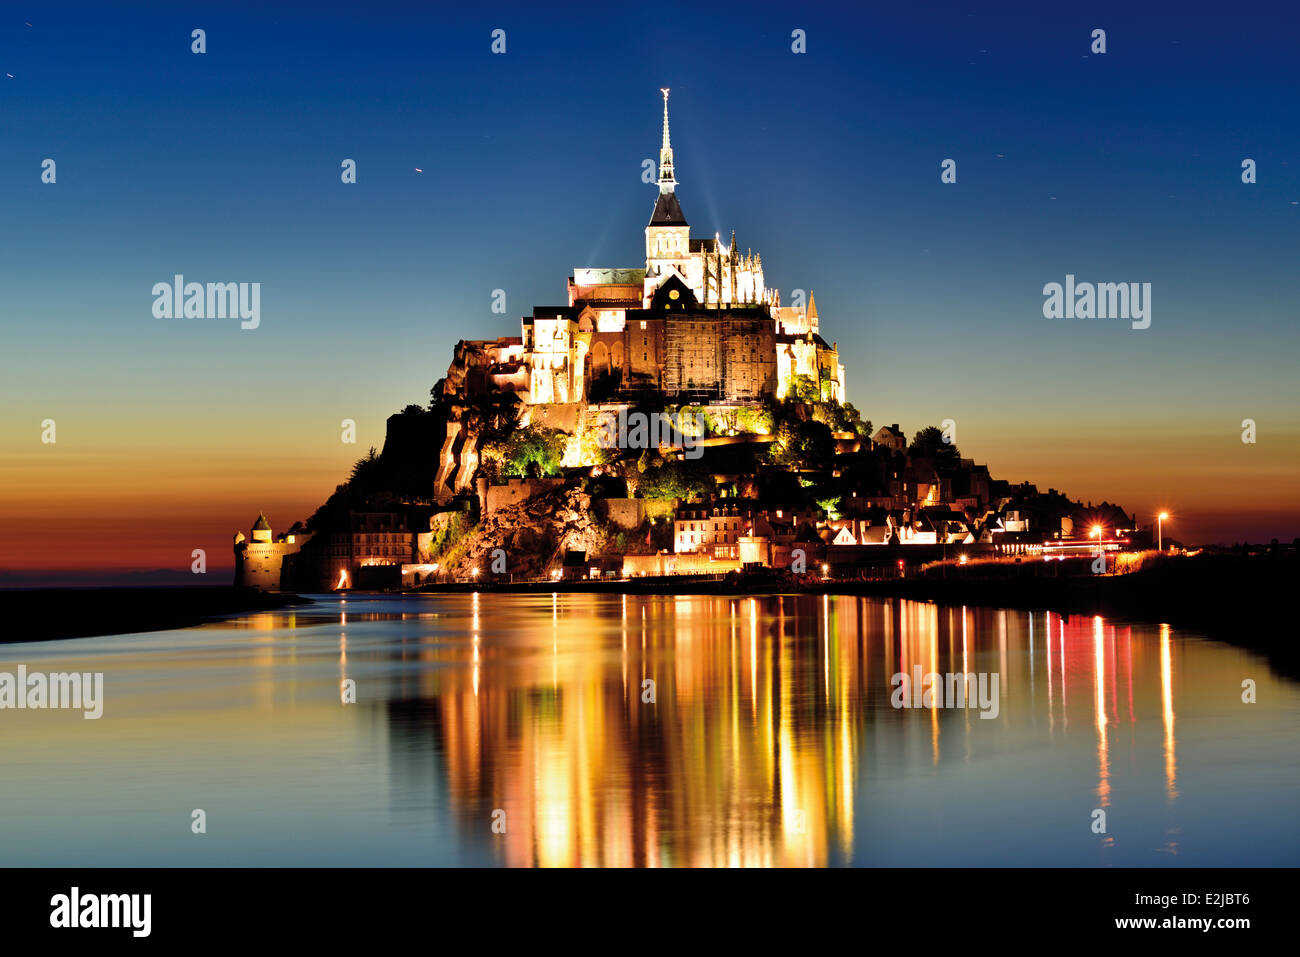 France, Normandy: Le Mont Saint Michel by night - Stock Image